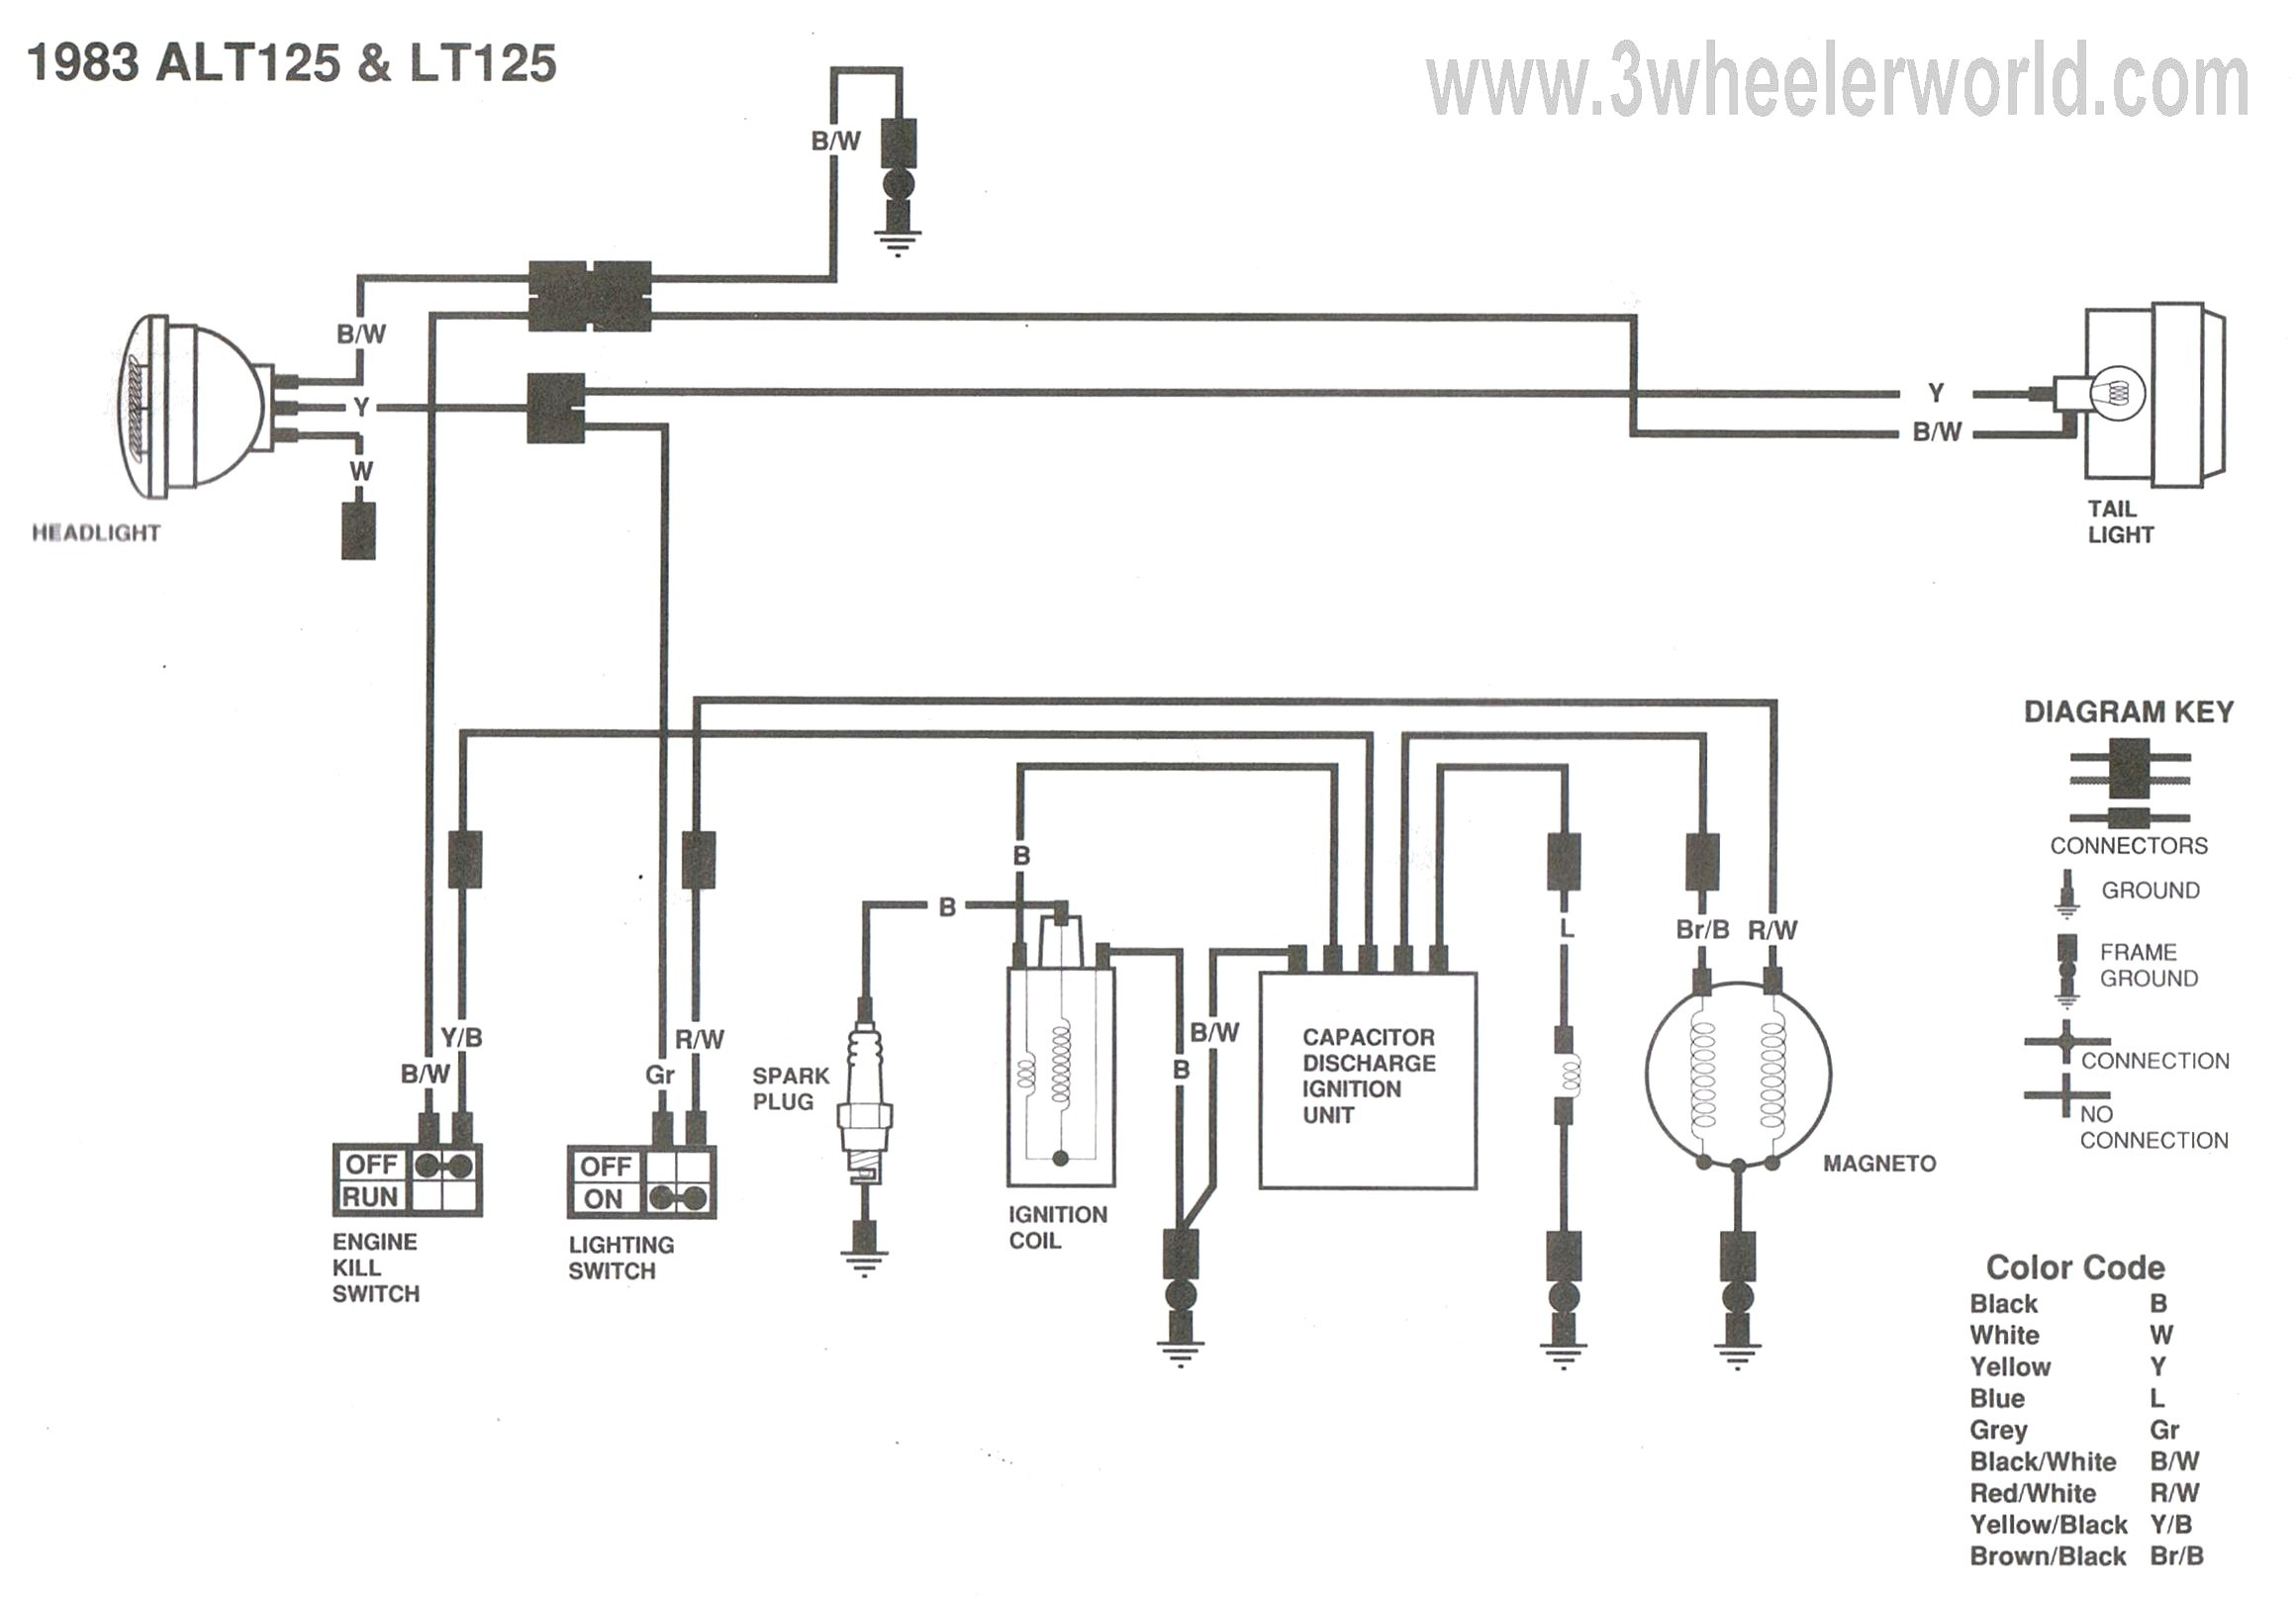 Wiring Diagram For Kawasaki Bayou on